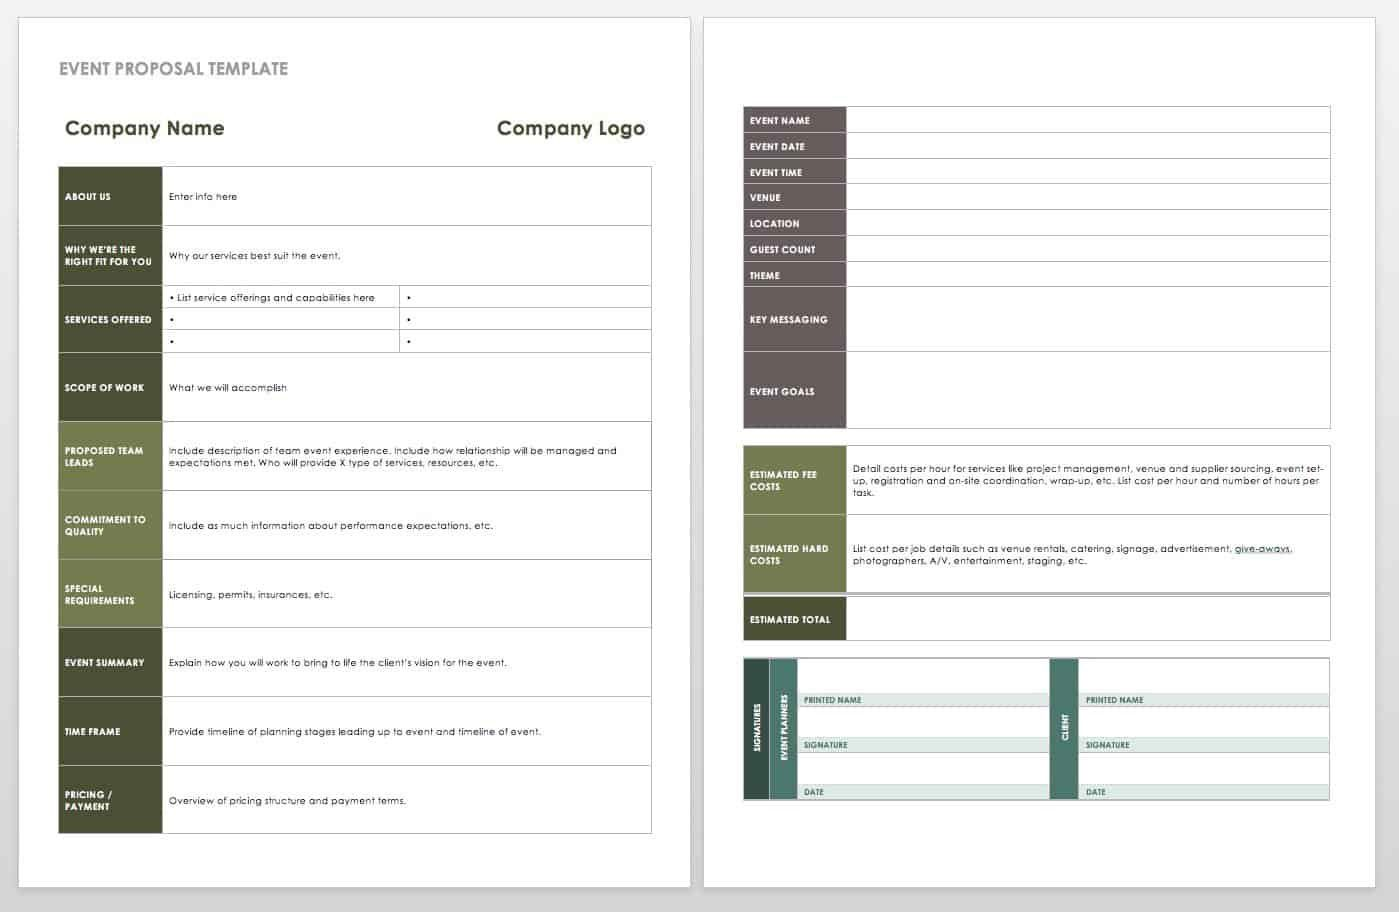 006 Imposing Free Event Checklist Template Word High Resolution  Planning Planner ContractFull